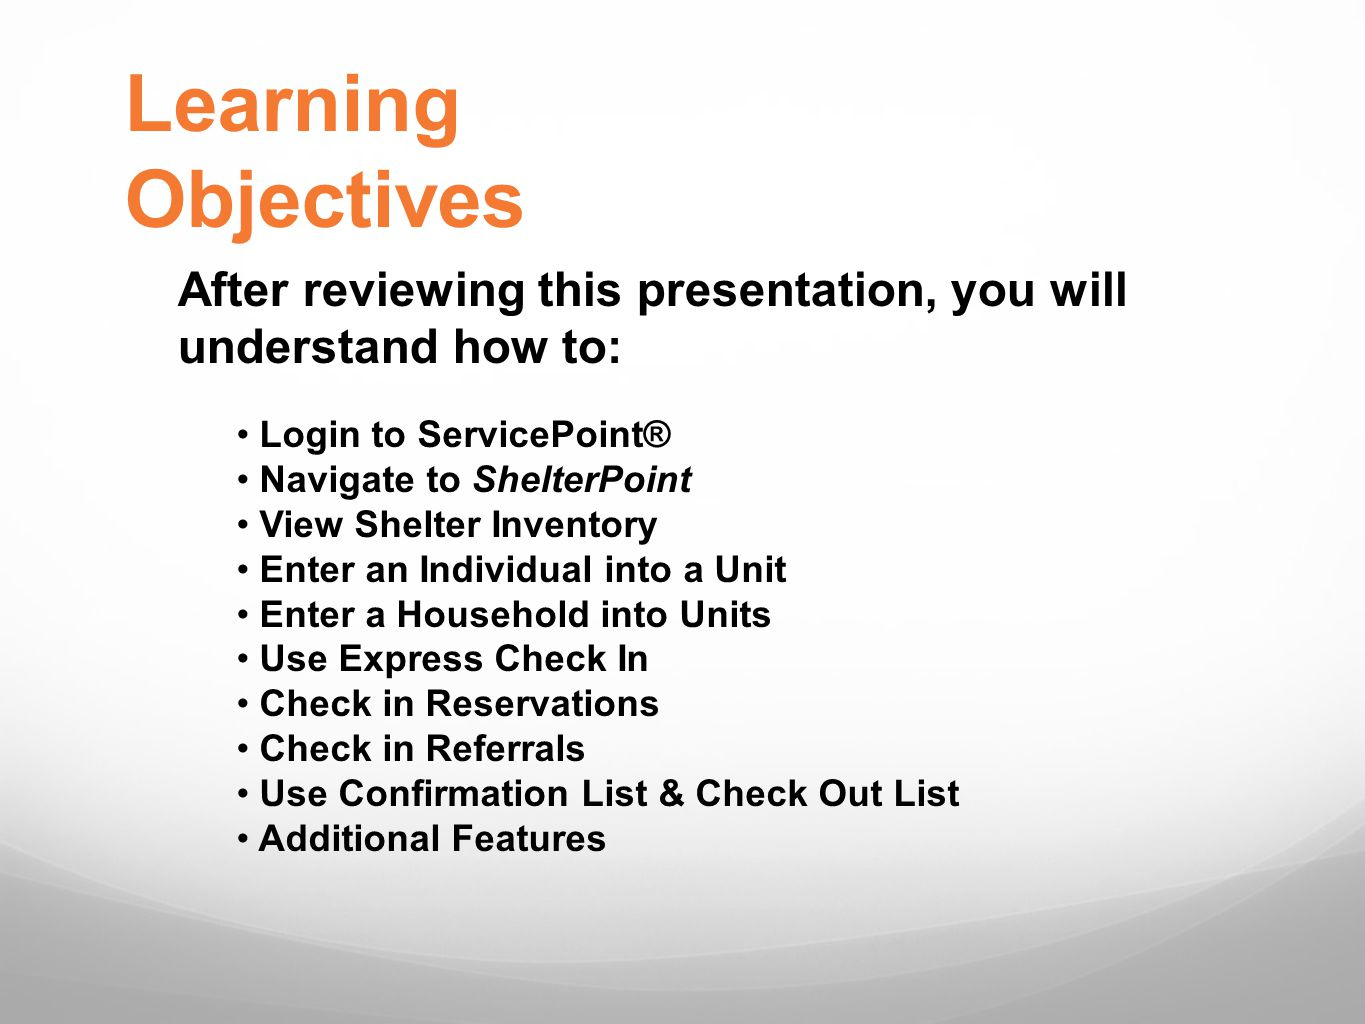 Learning Objectives After reviewing this presentation, you will understand how to: Login to ServicePoint® Navigate to ShelterPoint View Shelter Inventory Enter an Individual into a Unit Enter a Household into Units Use Express Check In Check in Reservations Check in Referrals Use Confirmation List & Check Out List Additional Features